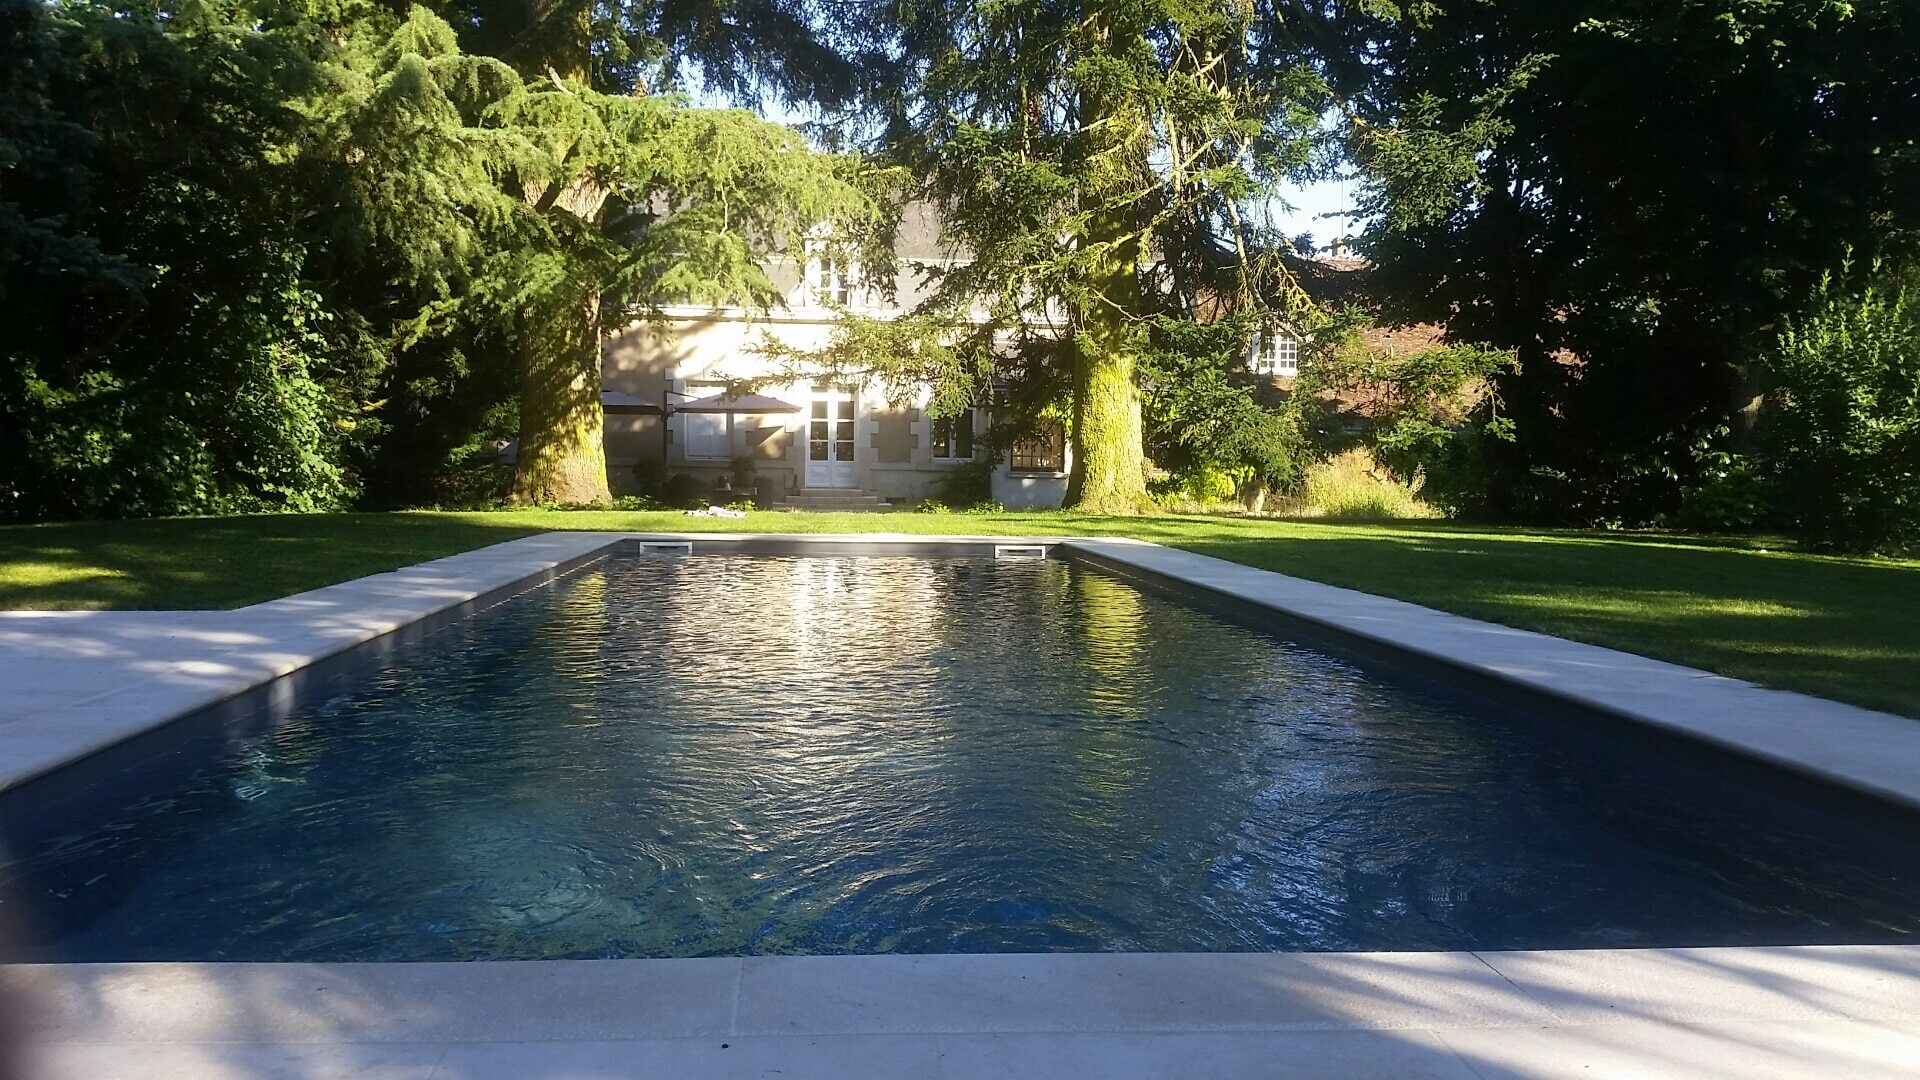 Photo de la piscine de la maison d'hôte